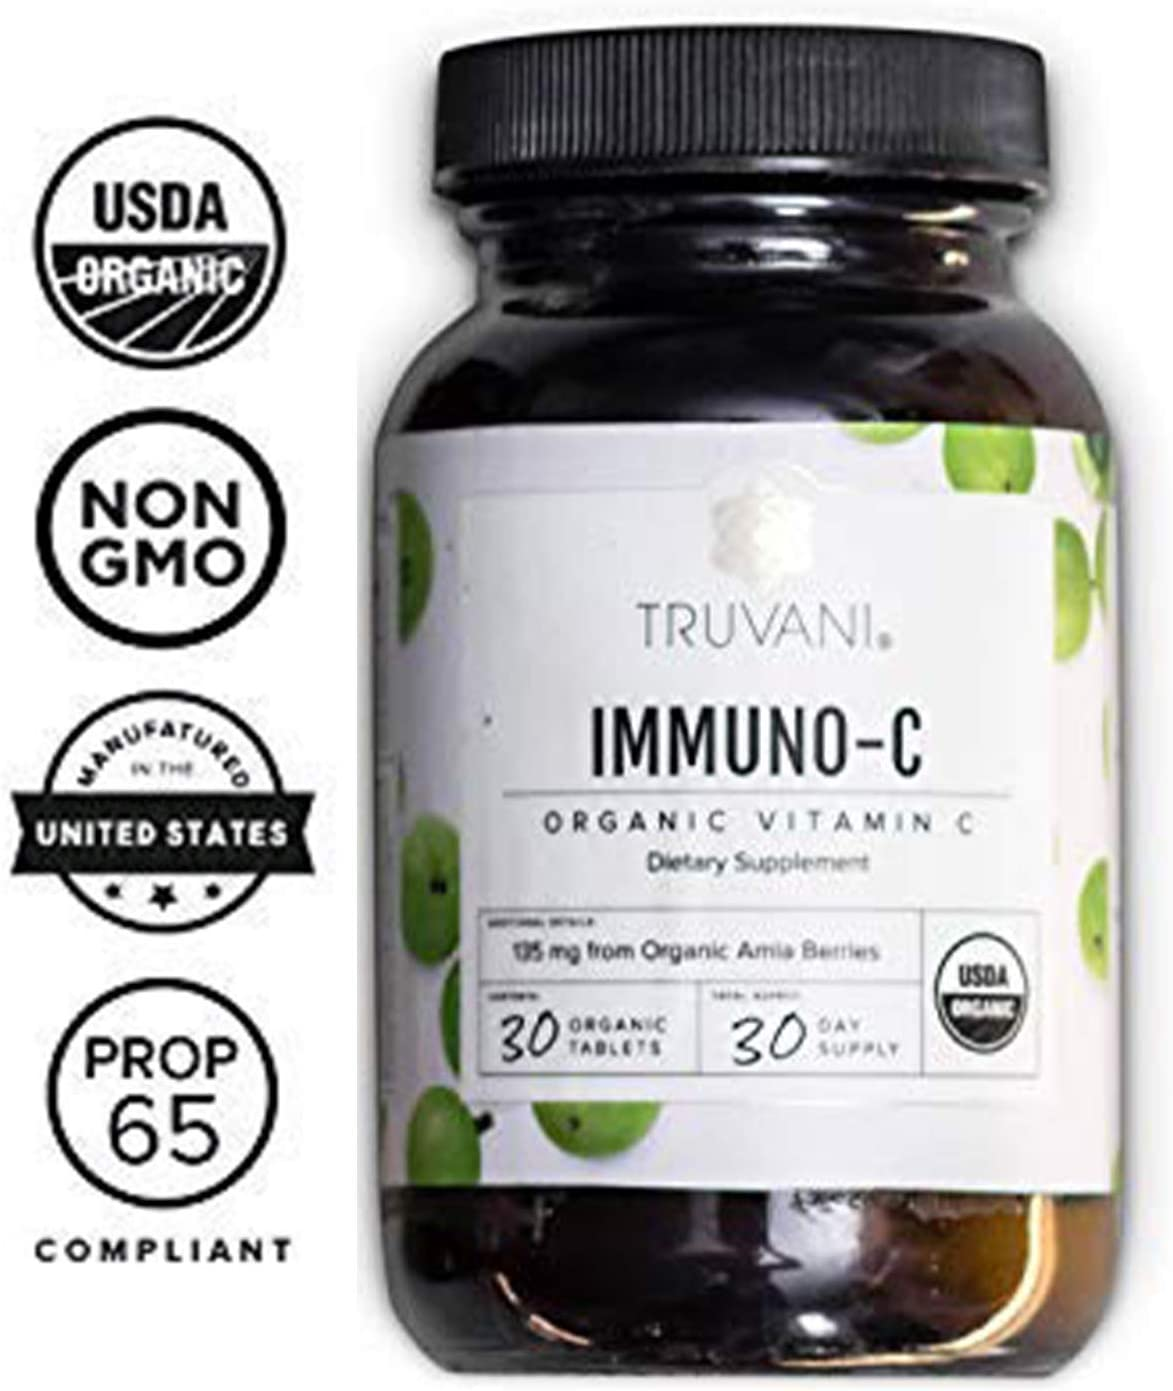 TRUVANI - Organic Vitamin C Tablets -Immune System Support and Antioxidant Supplement - Non GMO and Gluten Free - 30 Vegan Tablets